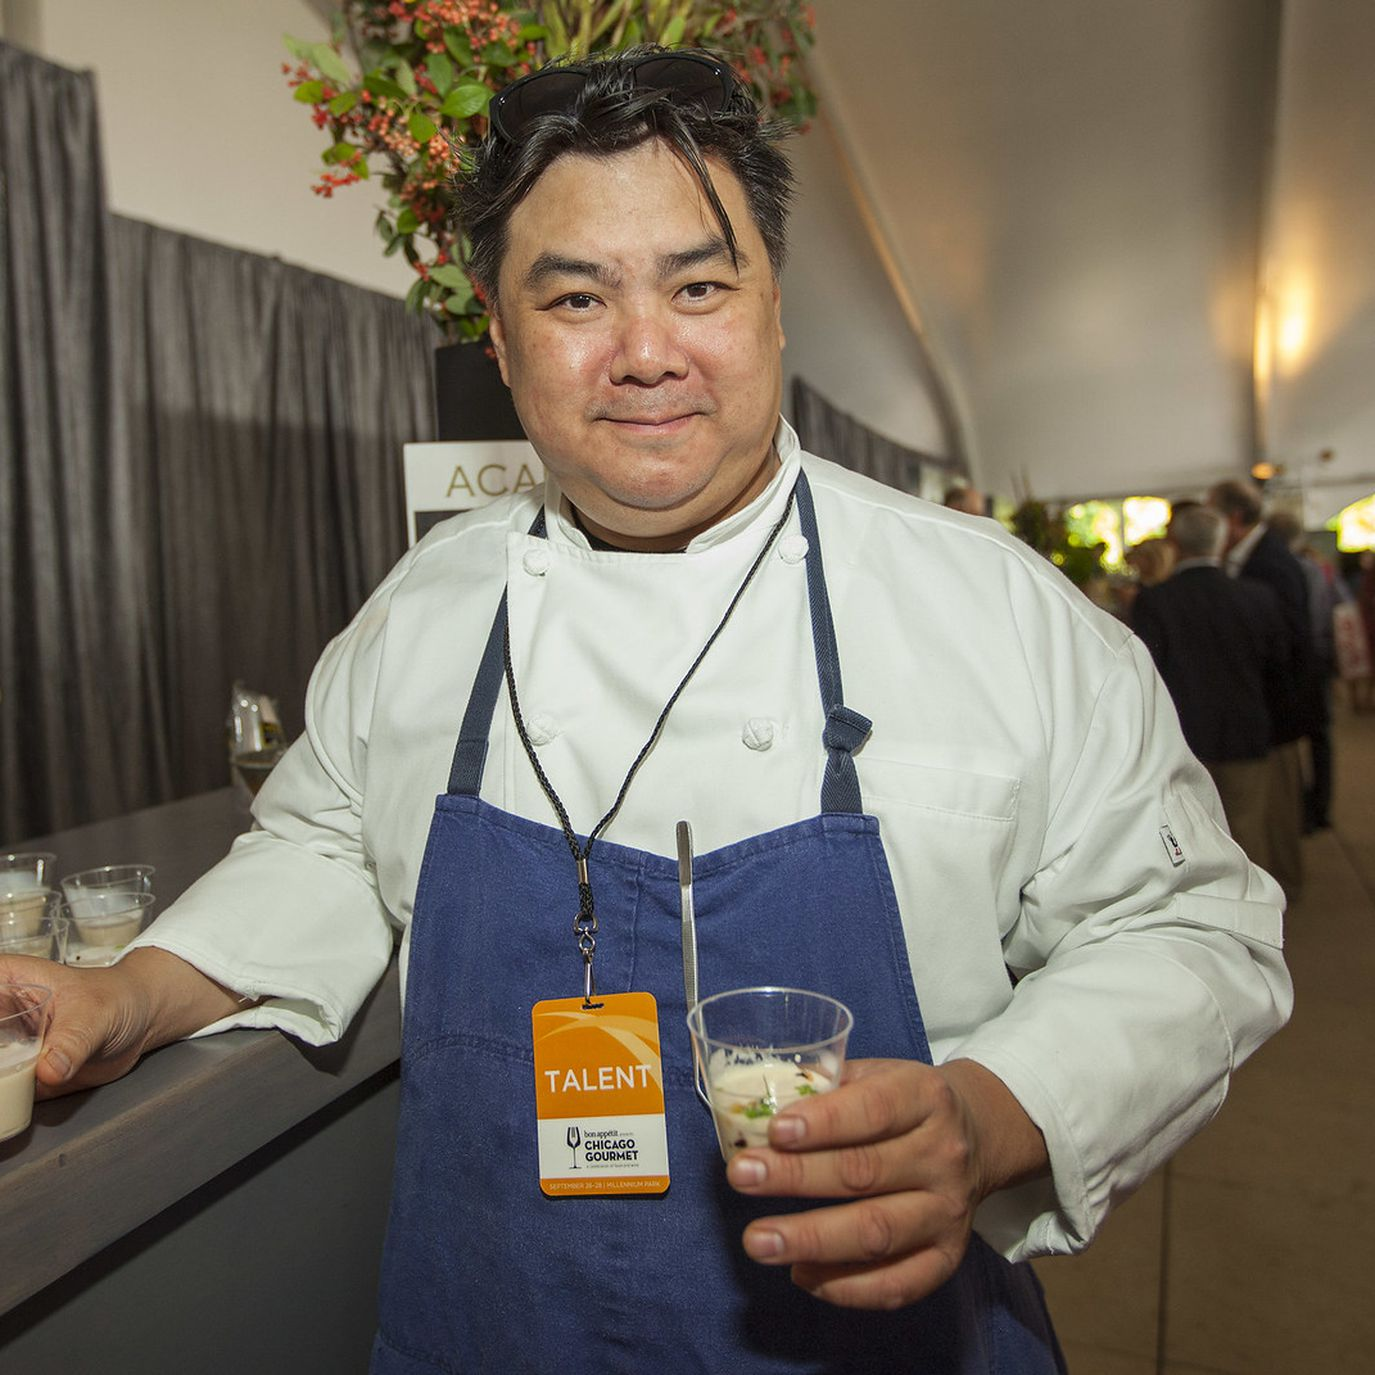 A chef leaning on a table with a drink in his hand wearing a blue apron.